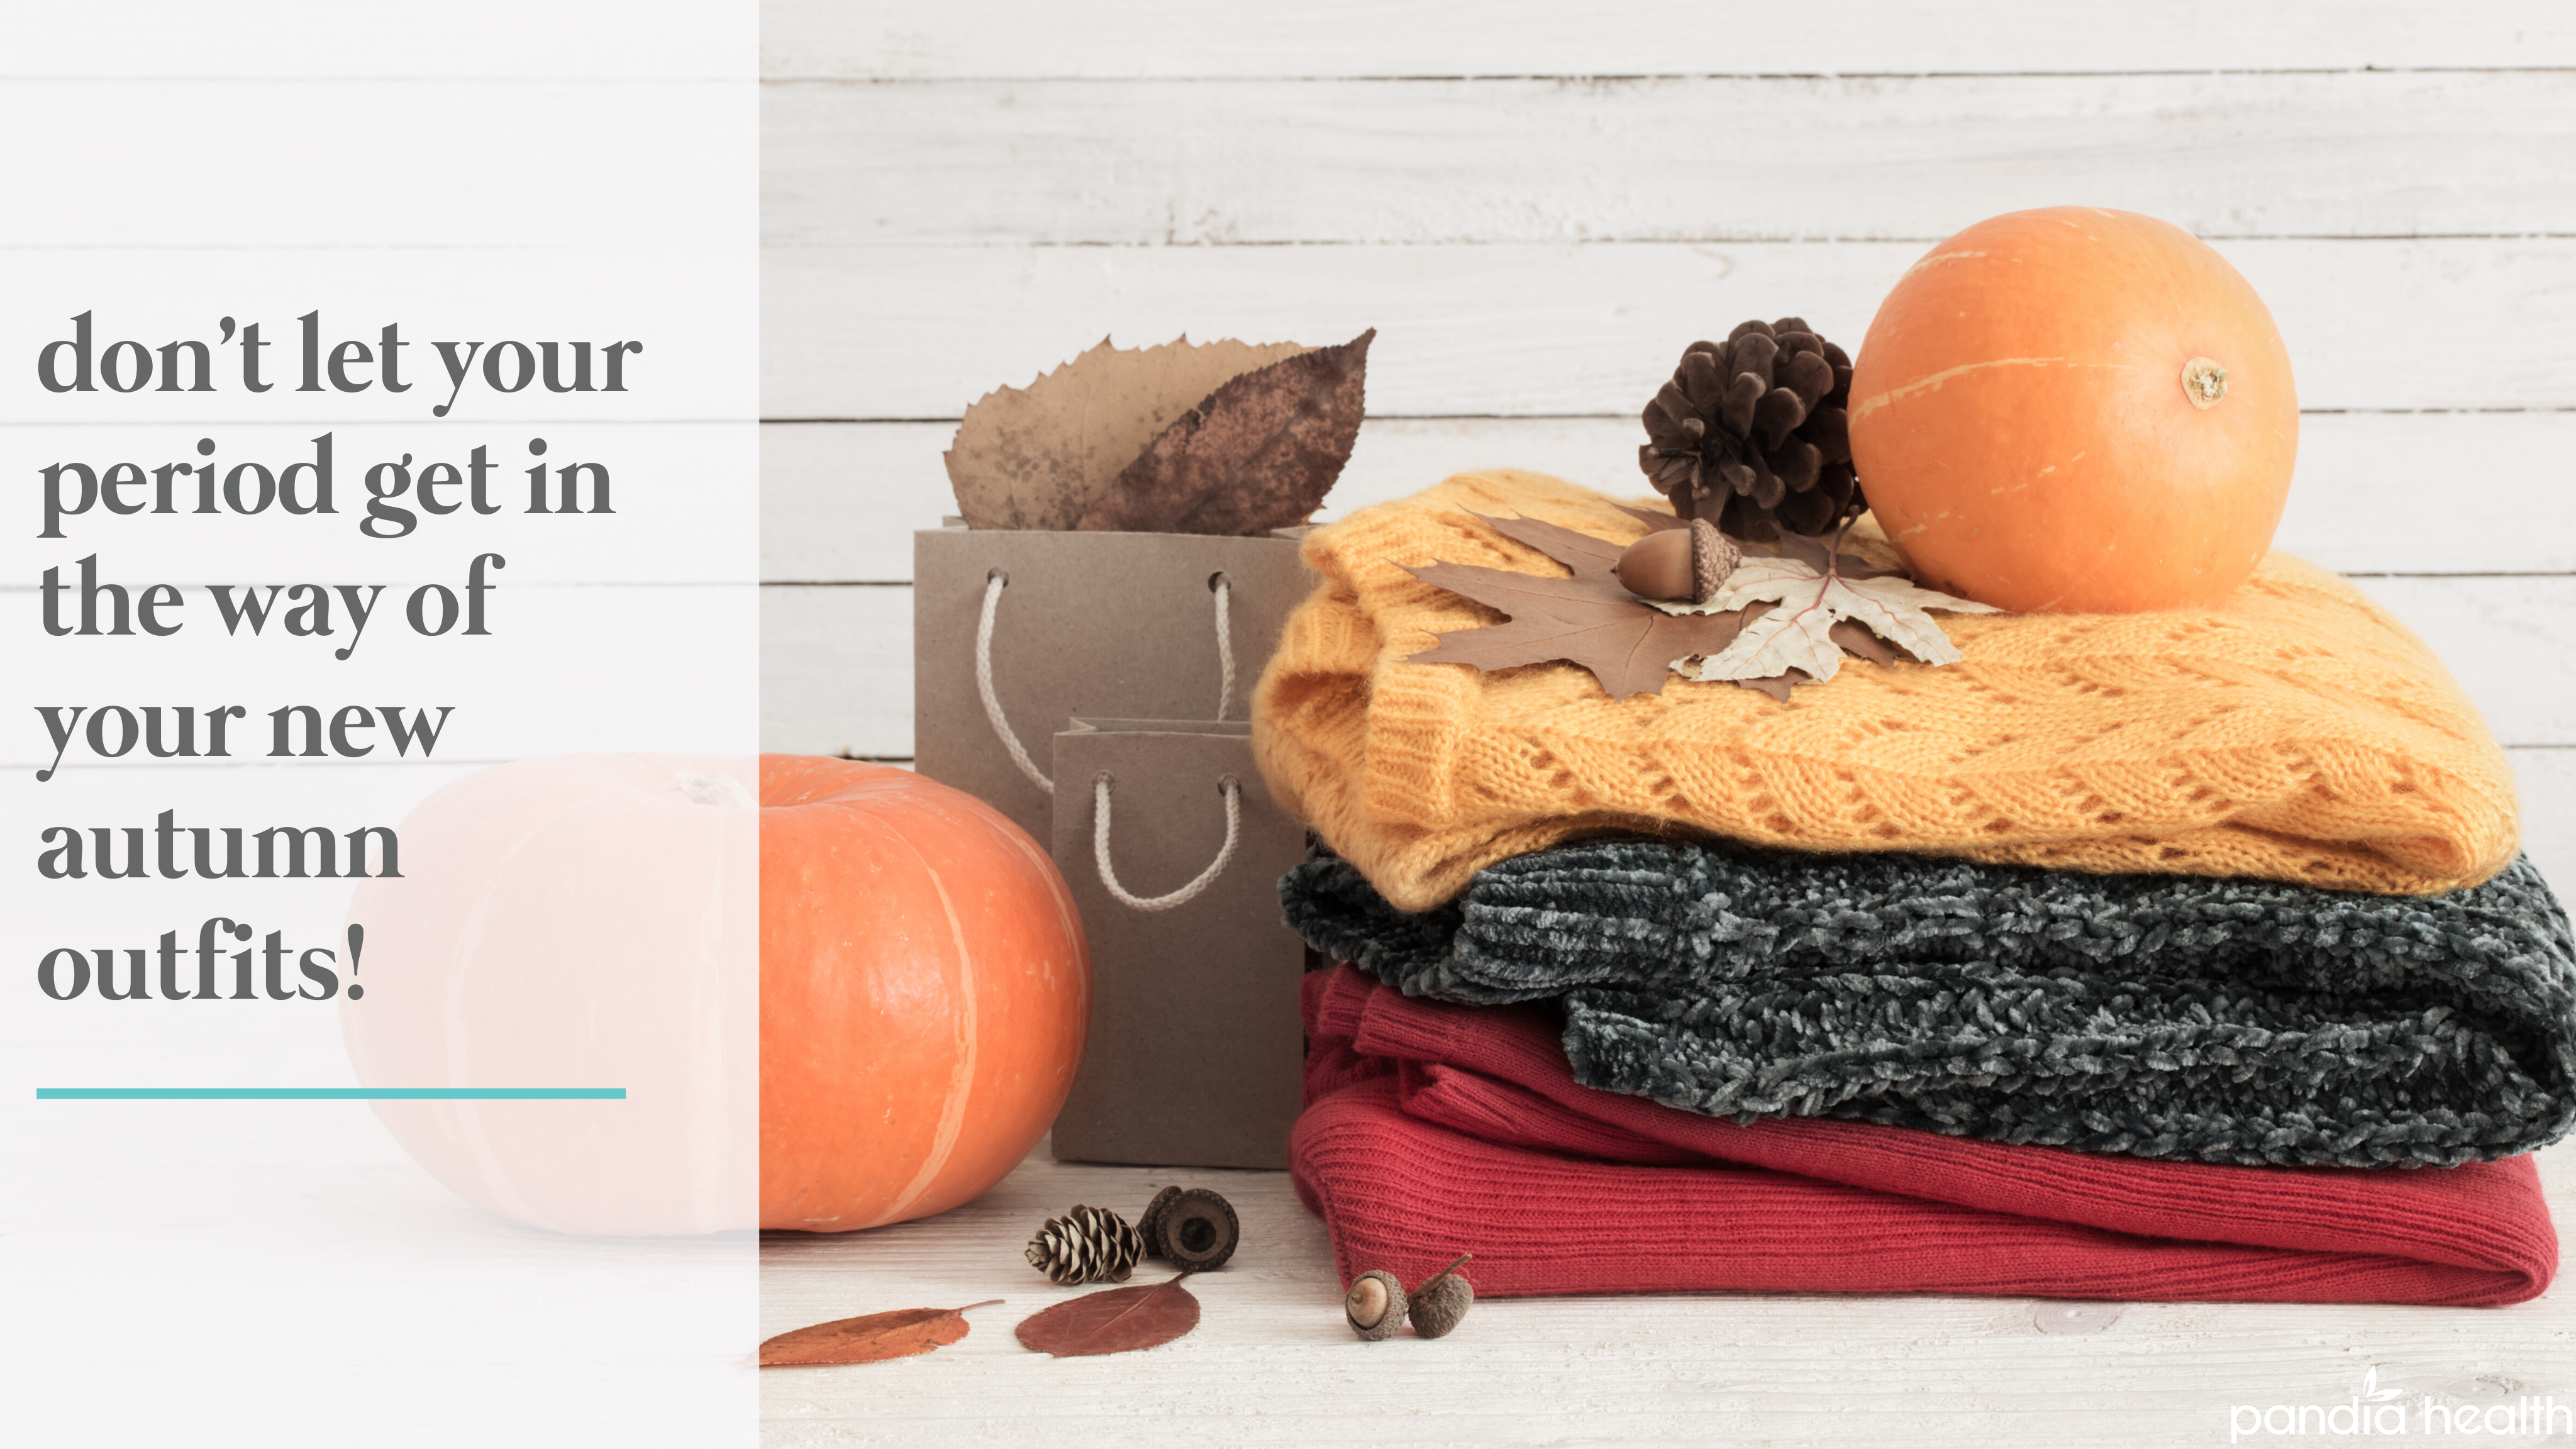 clothes folded, leaves, and pumpkins